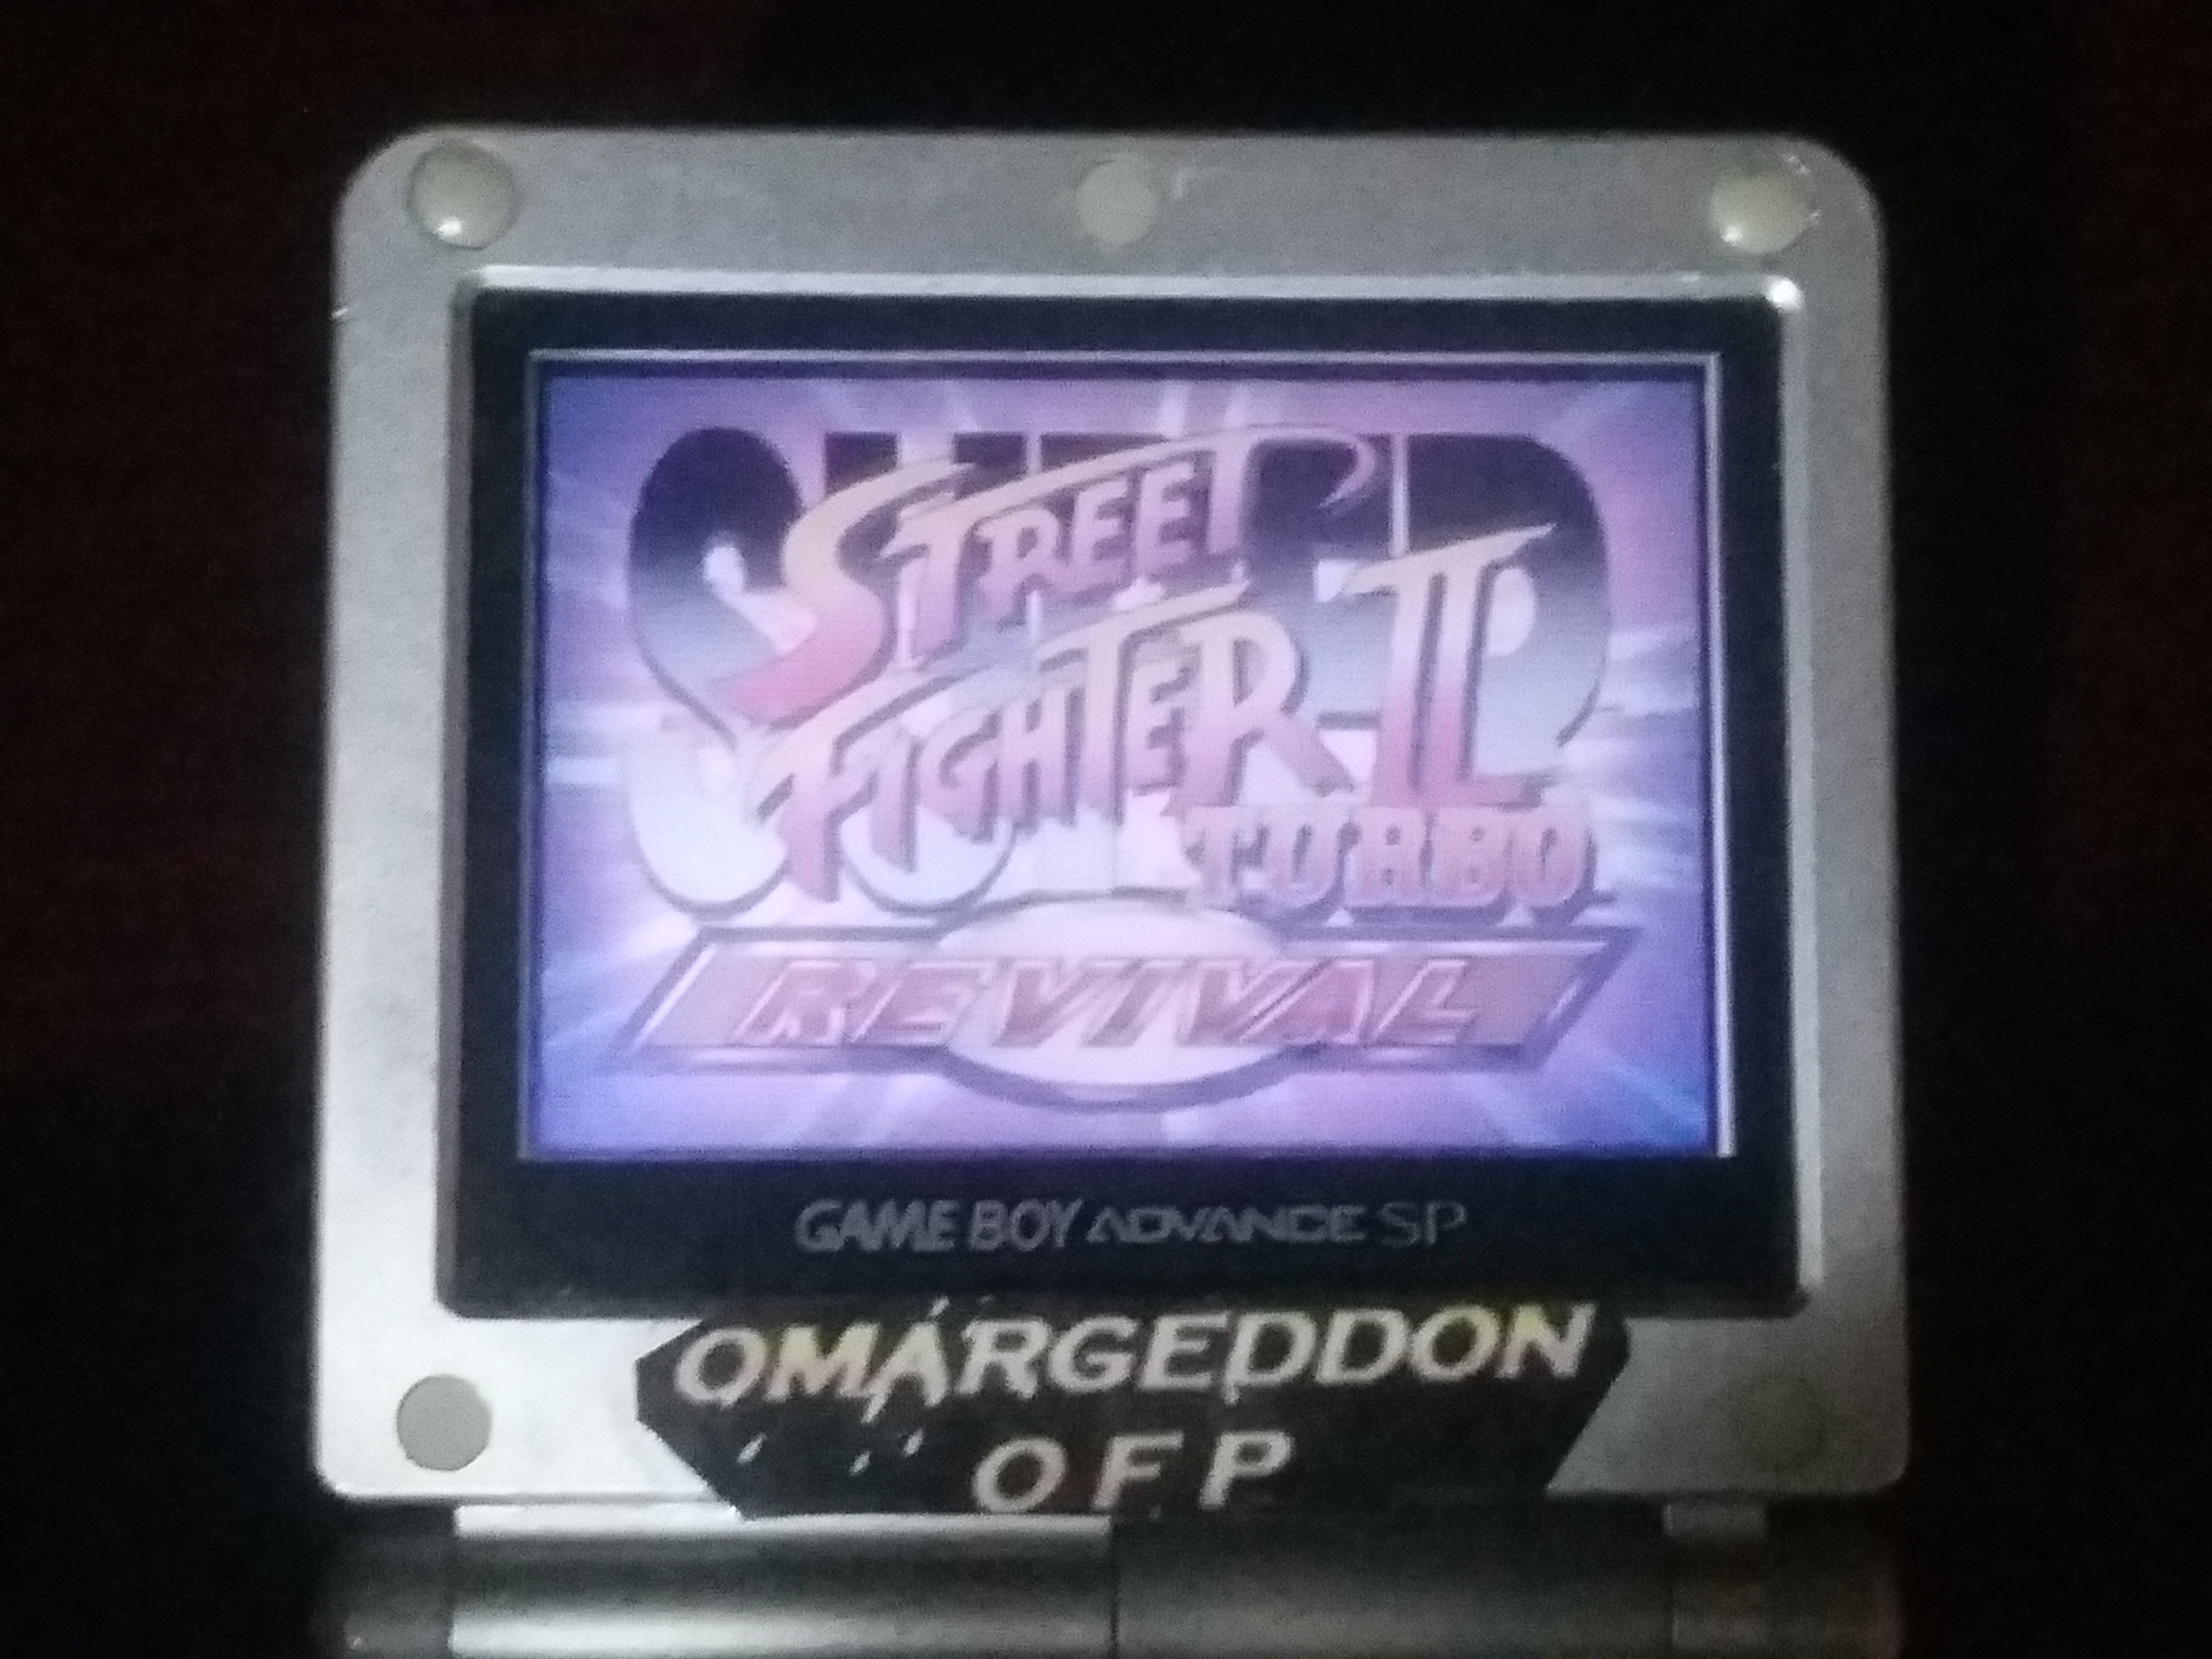 omargeddon: Super Street Fighter II Turbo Revival [Arcade Mode / Difficulty: Level 1] (GBA) 286,700 points on 2018-01-17 14:48:26